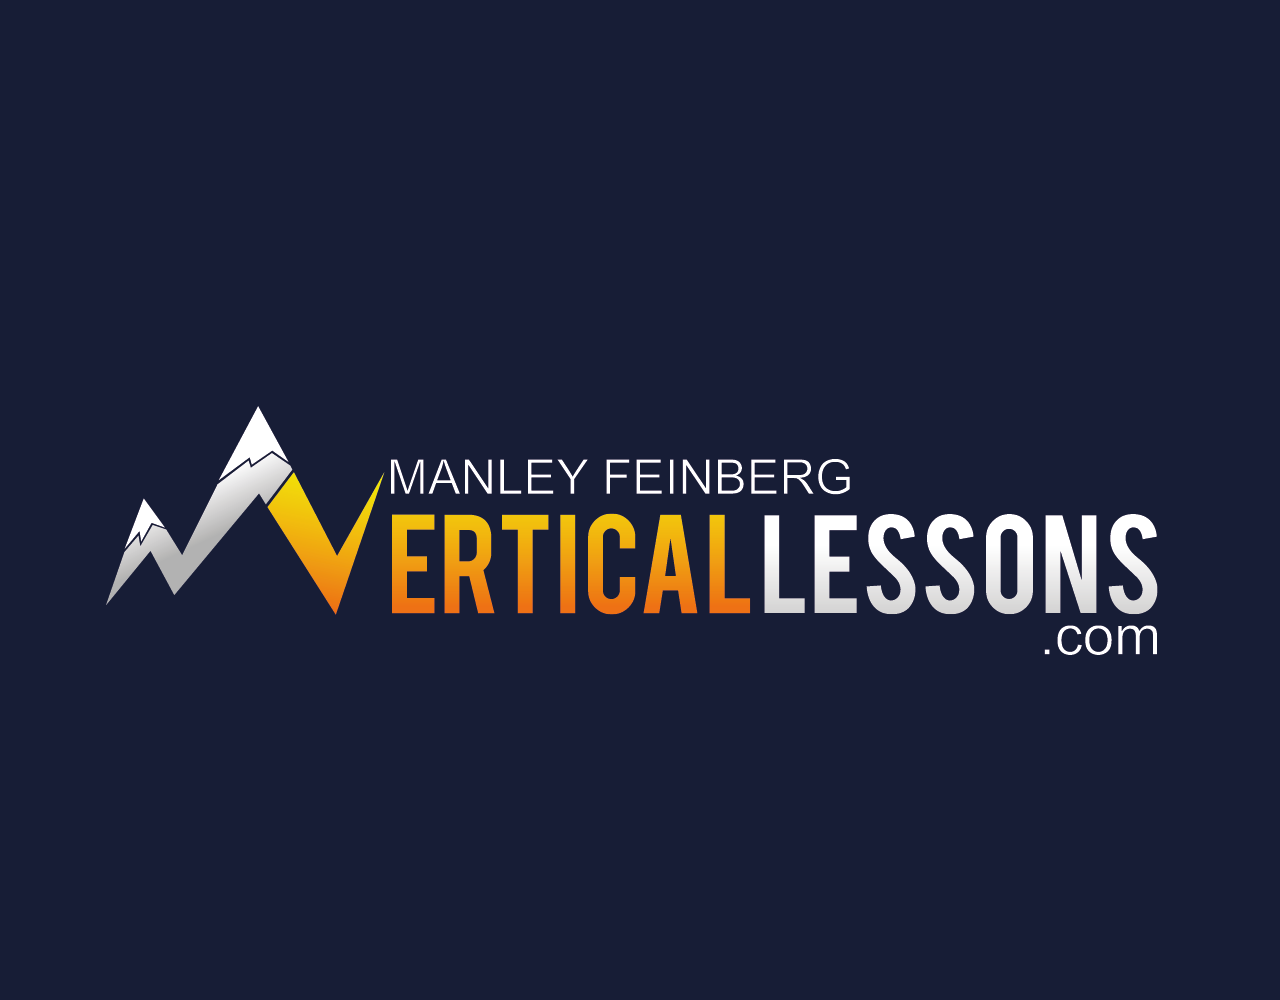 Vertical Lessons